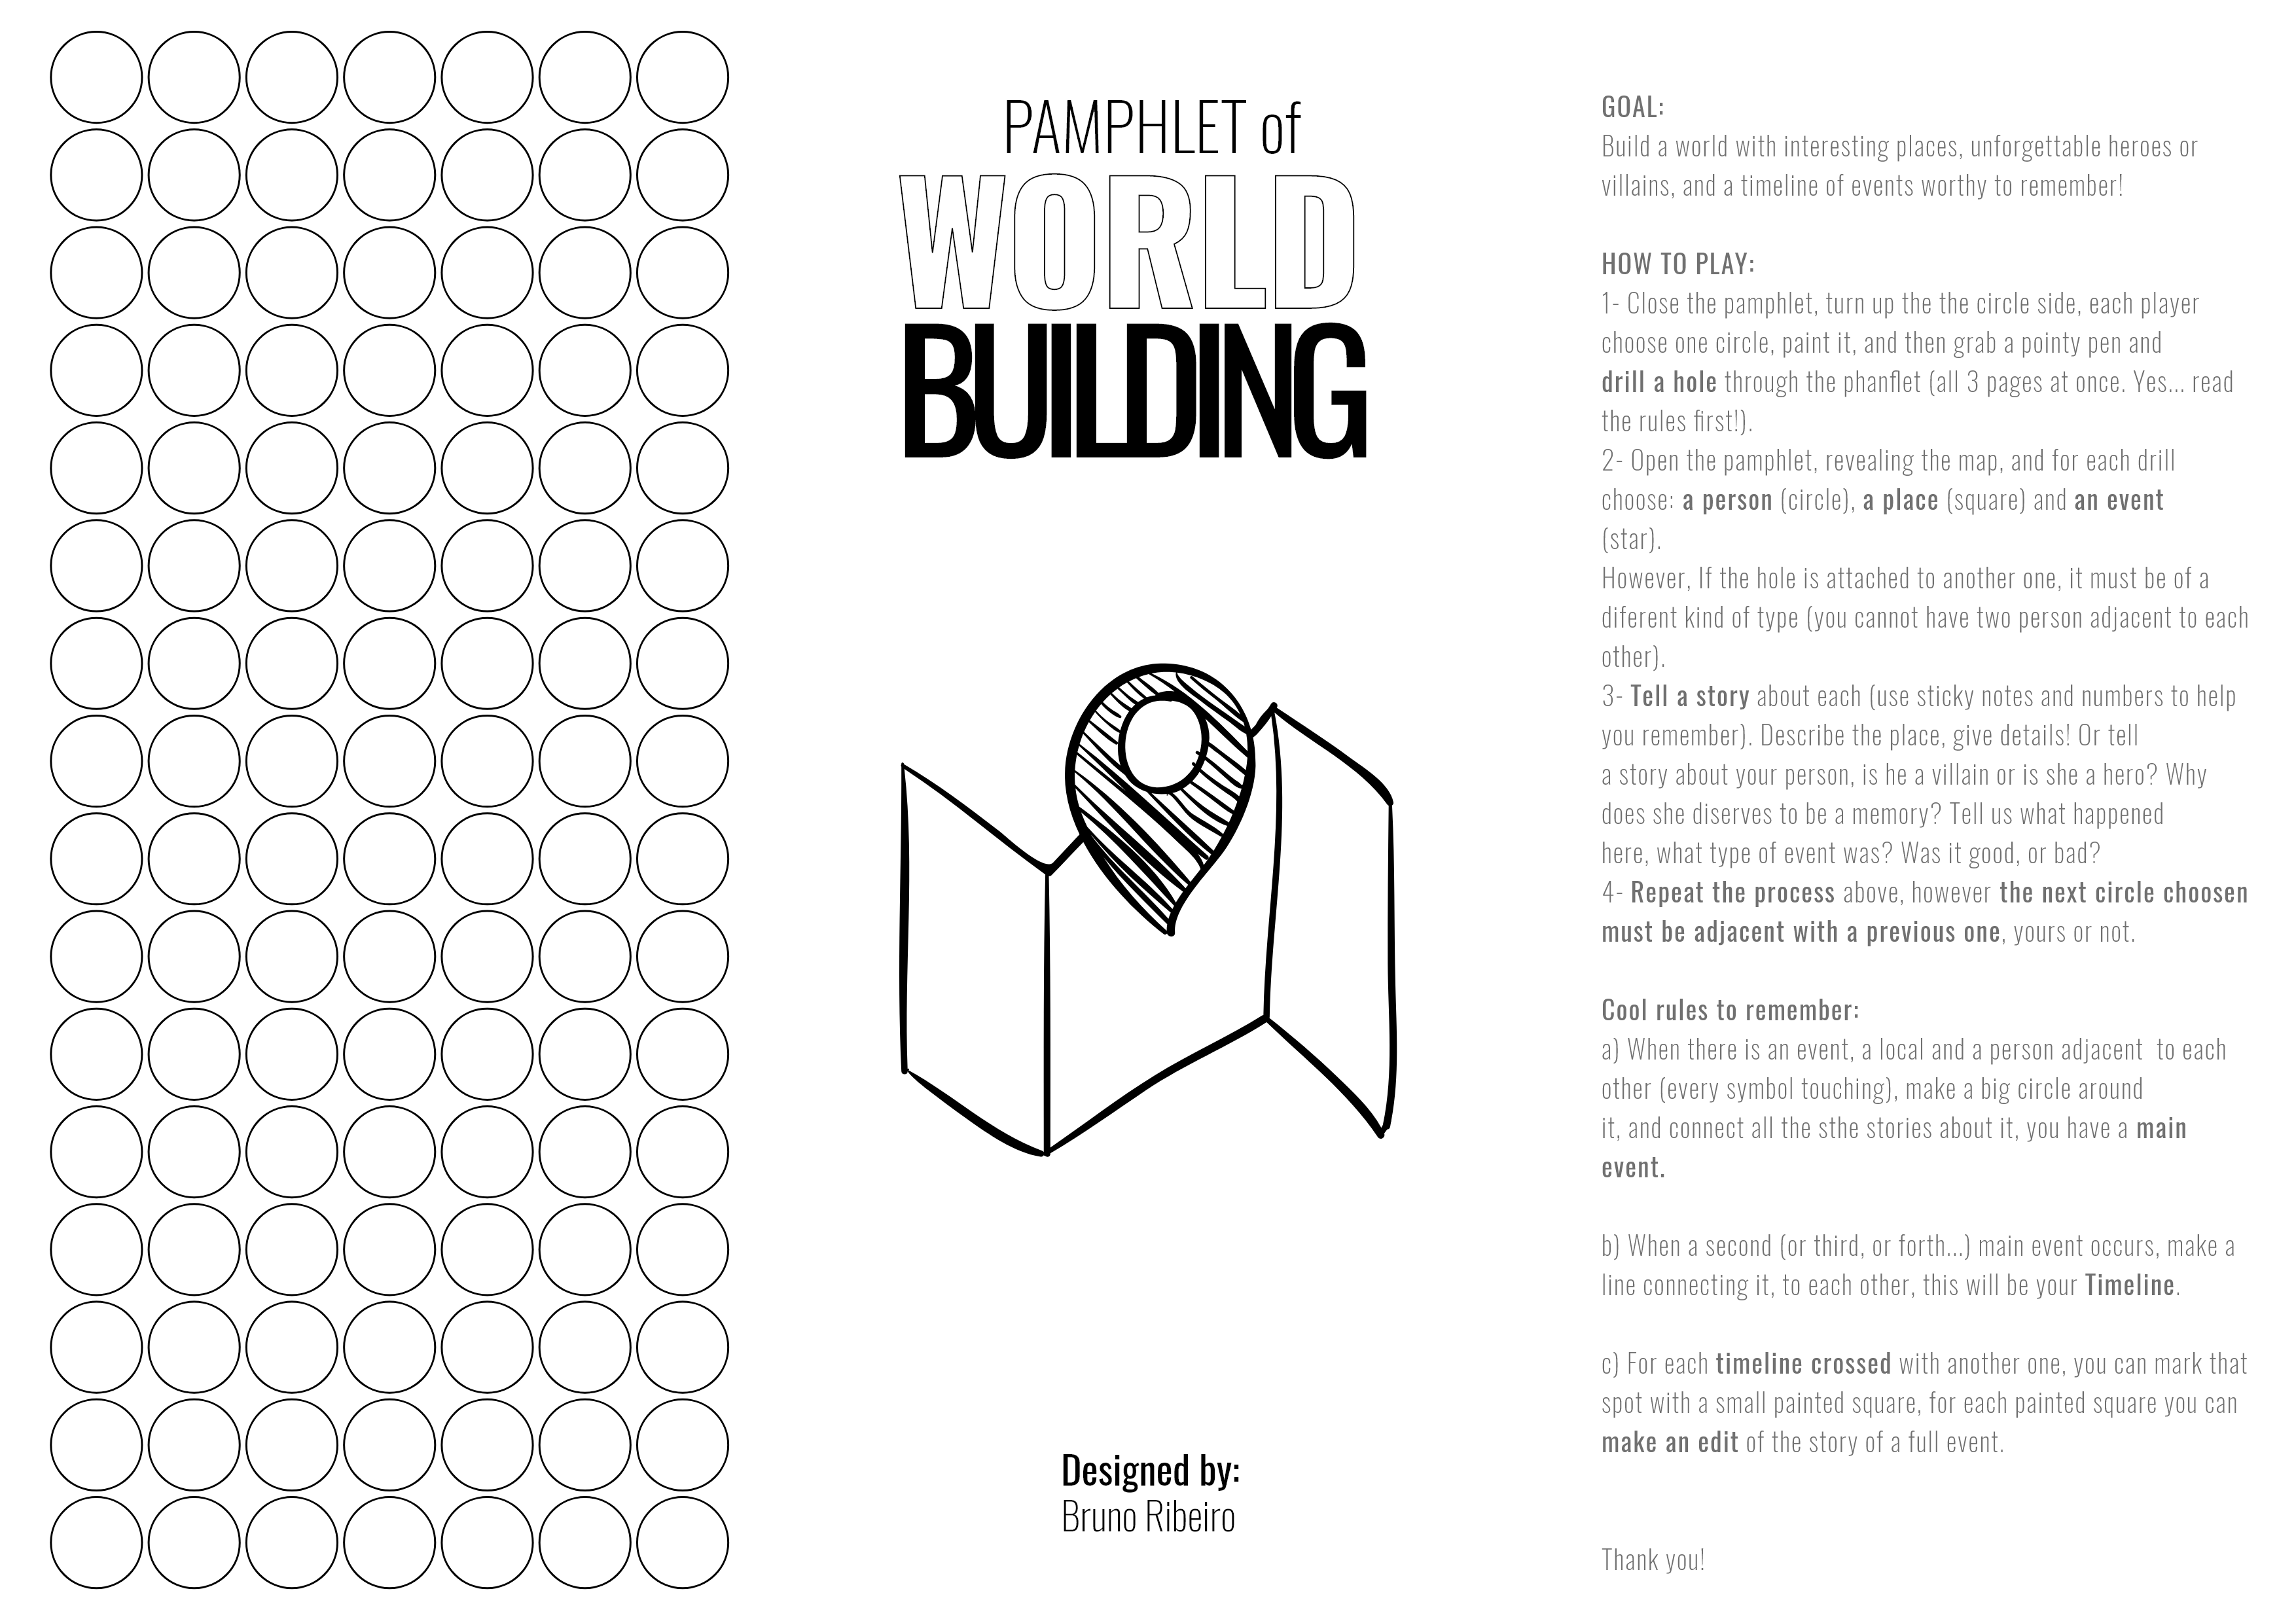 Pamphlet of World Building by Rola Iniciativa for Pamphlet